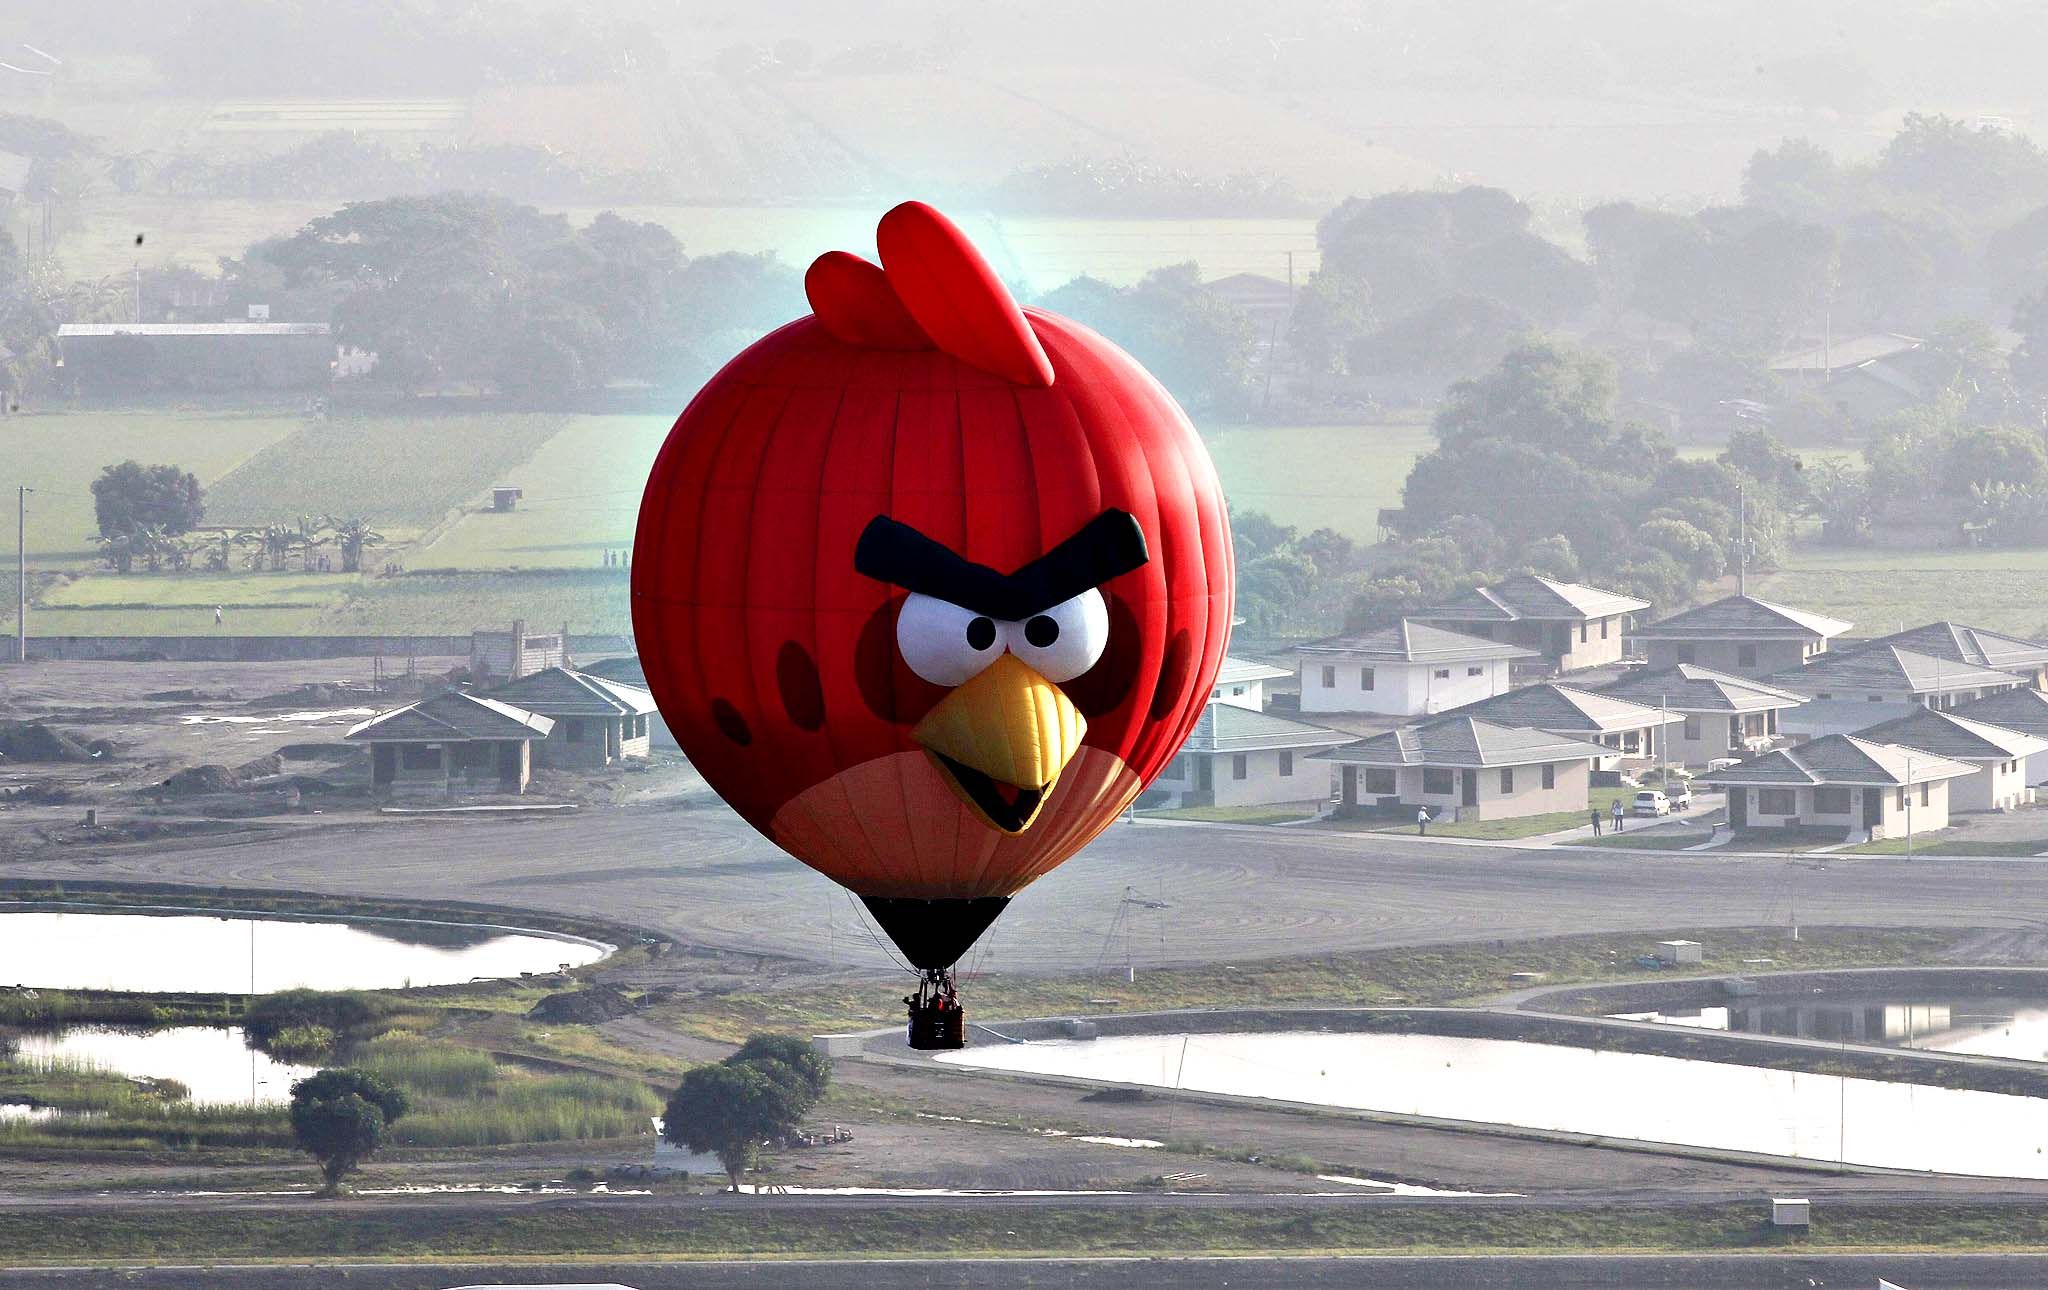 An Angry Bird inspired Hot Air balloon floats over rice fields and houses during the Philippine International Balloon festival in Lubao town, Pampanga province, north of Manila...An Angry Bird inspired Hot Air balloon floats over rice fields and houses during the Philippine International Balloon festival in Lubao town, Pampanga province, north of Manila April 10, 2014. An estimated 30 hot air balloons participated in the event which aims to promote tourism in the Southeast Asian country, local media reported.